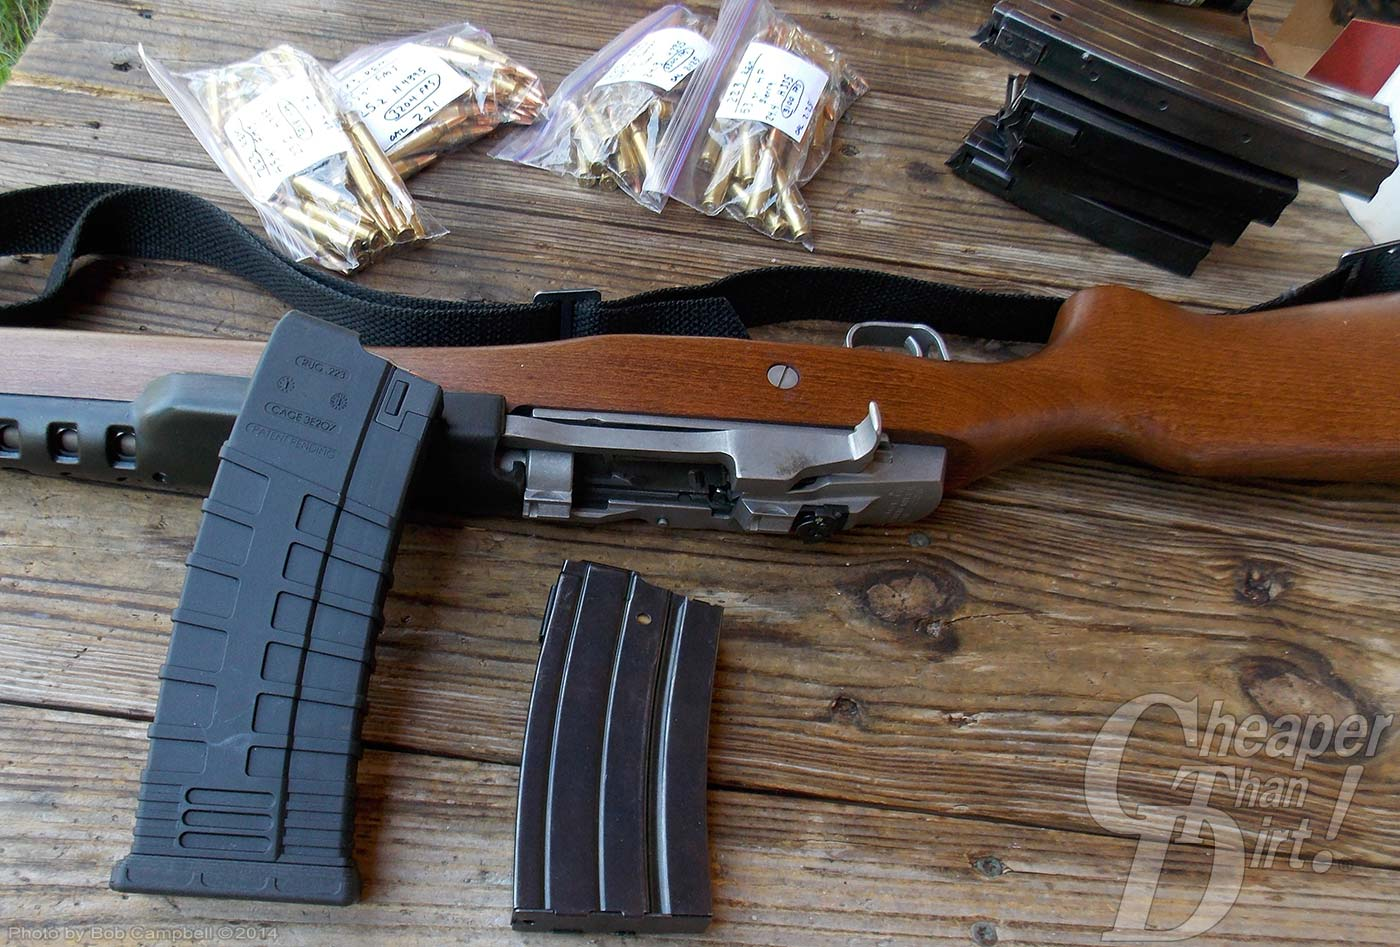 ruger s first class 223 the mini 14 rifle